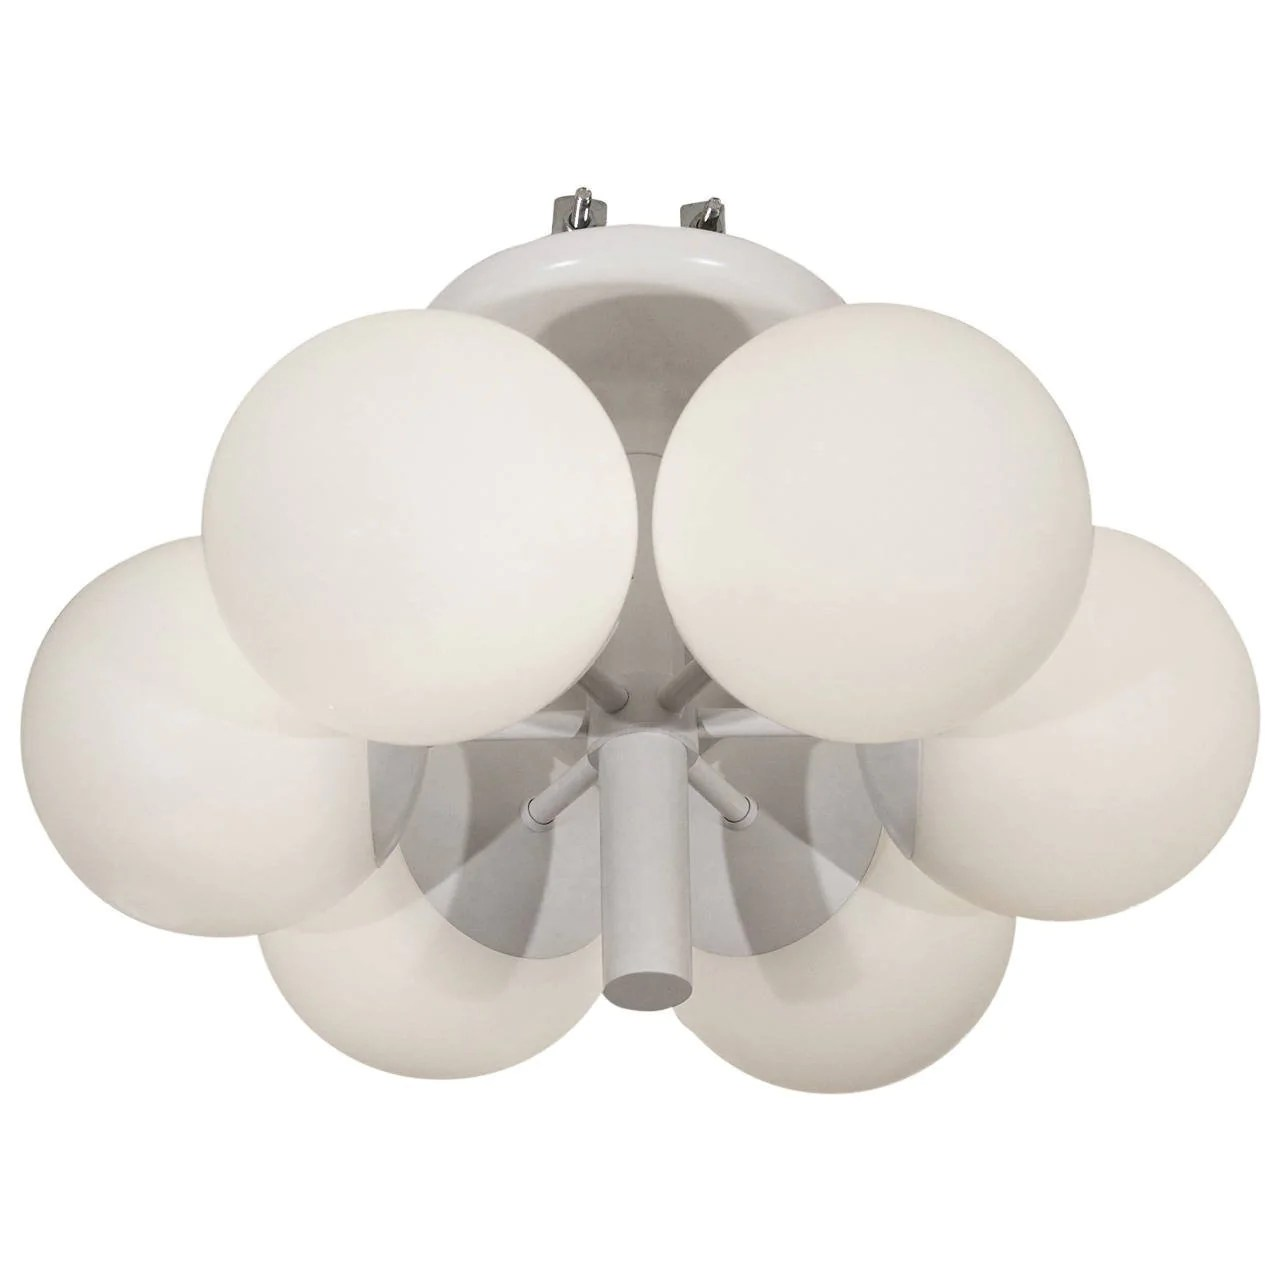 Leuchten Kaiser Six-globe Satin White Radial Chandelier By Kaiser Leuchten – Avery & Dash Collections